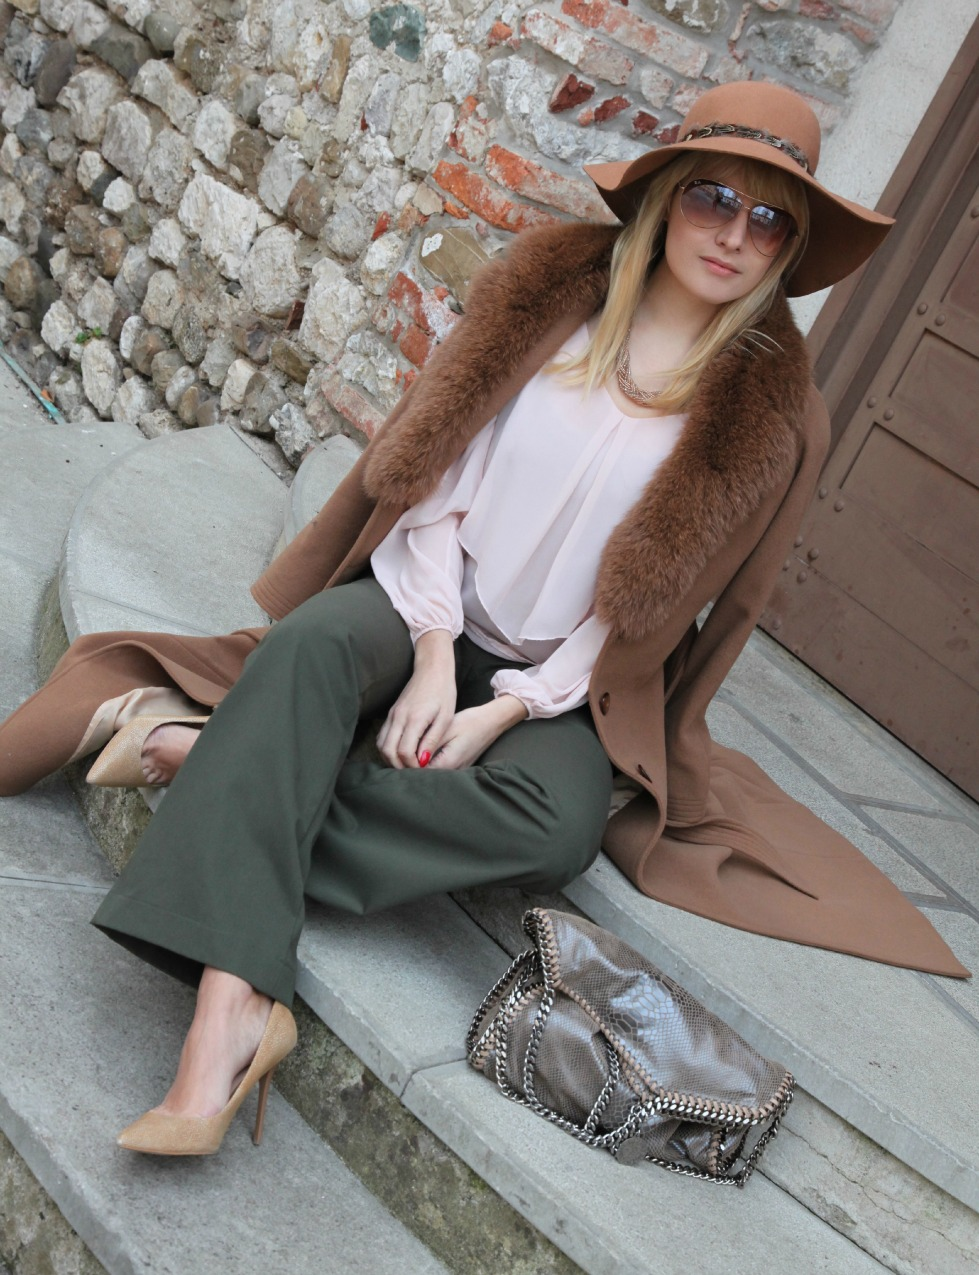 Desideri, inverno ed un cappotto color cammello, alessia milanese, thechilicool, fashion blog, fashion blogger, opposes complementaires, falabella stella mc cartney